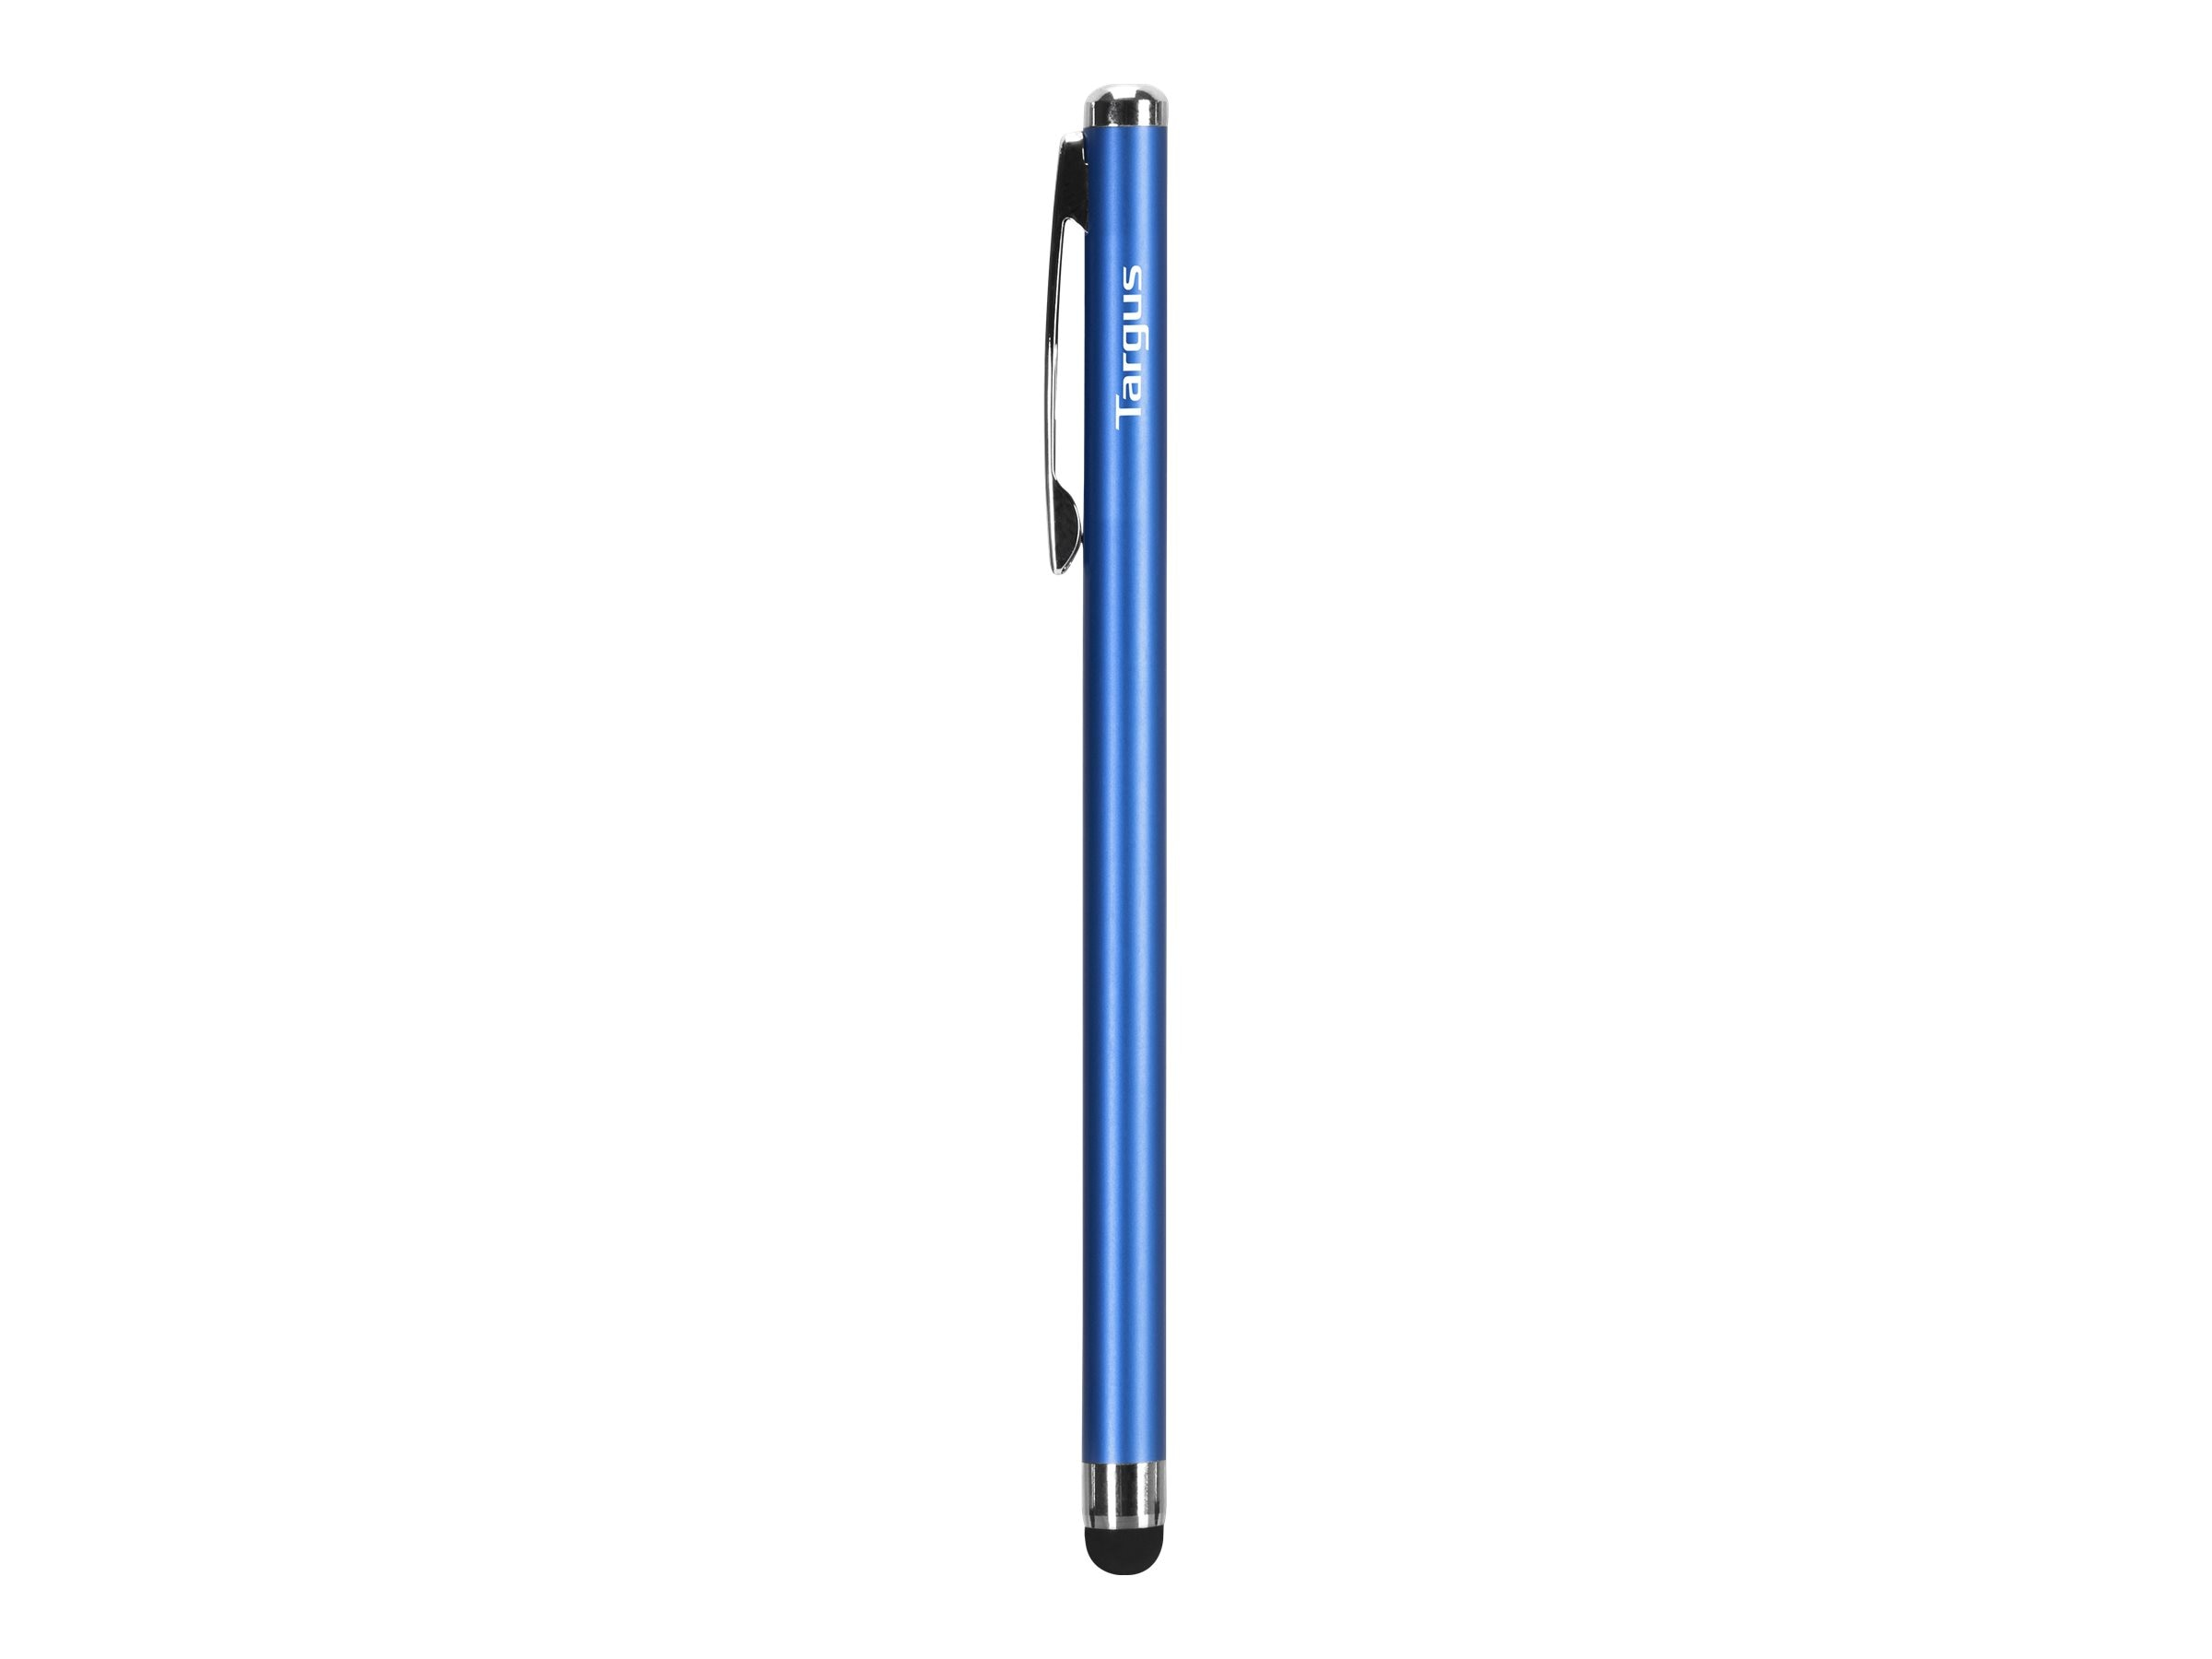 Targus Slim Stylus for Smartphones, Metallic Blue